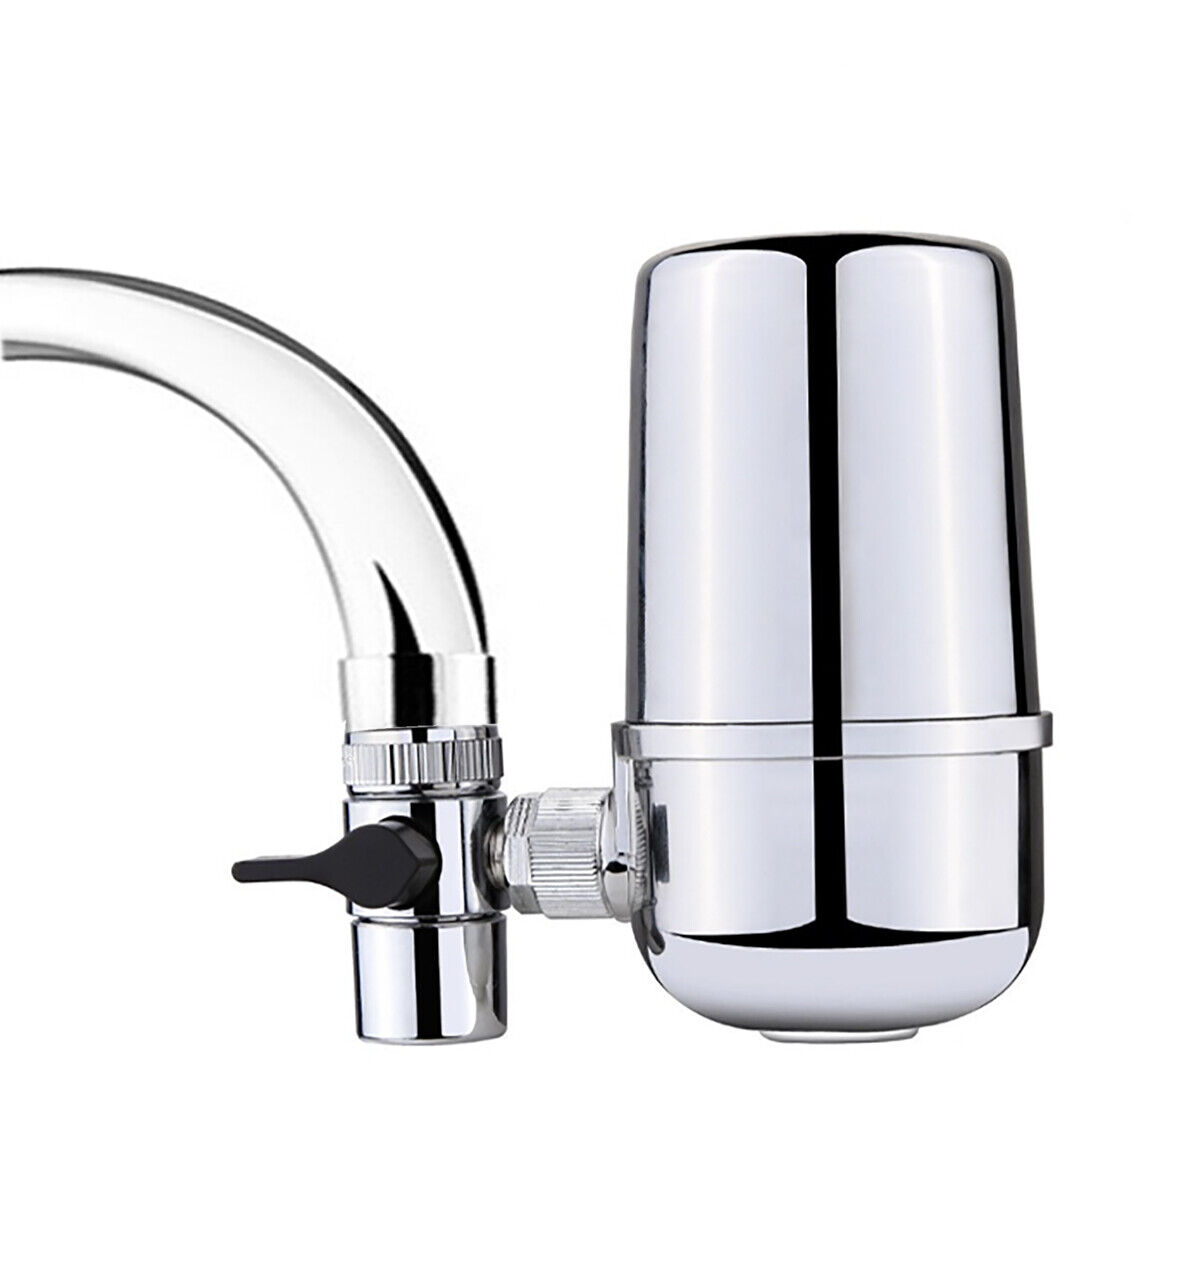 Kitchen Faucet Tap Filtration Water Filter Purifier with Fil